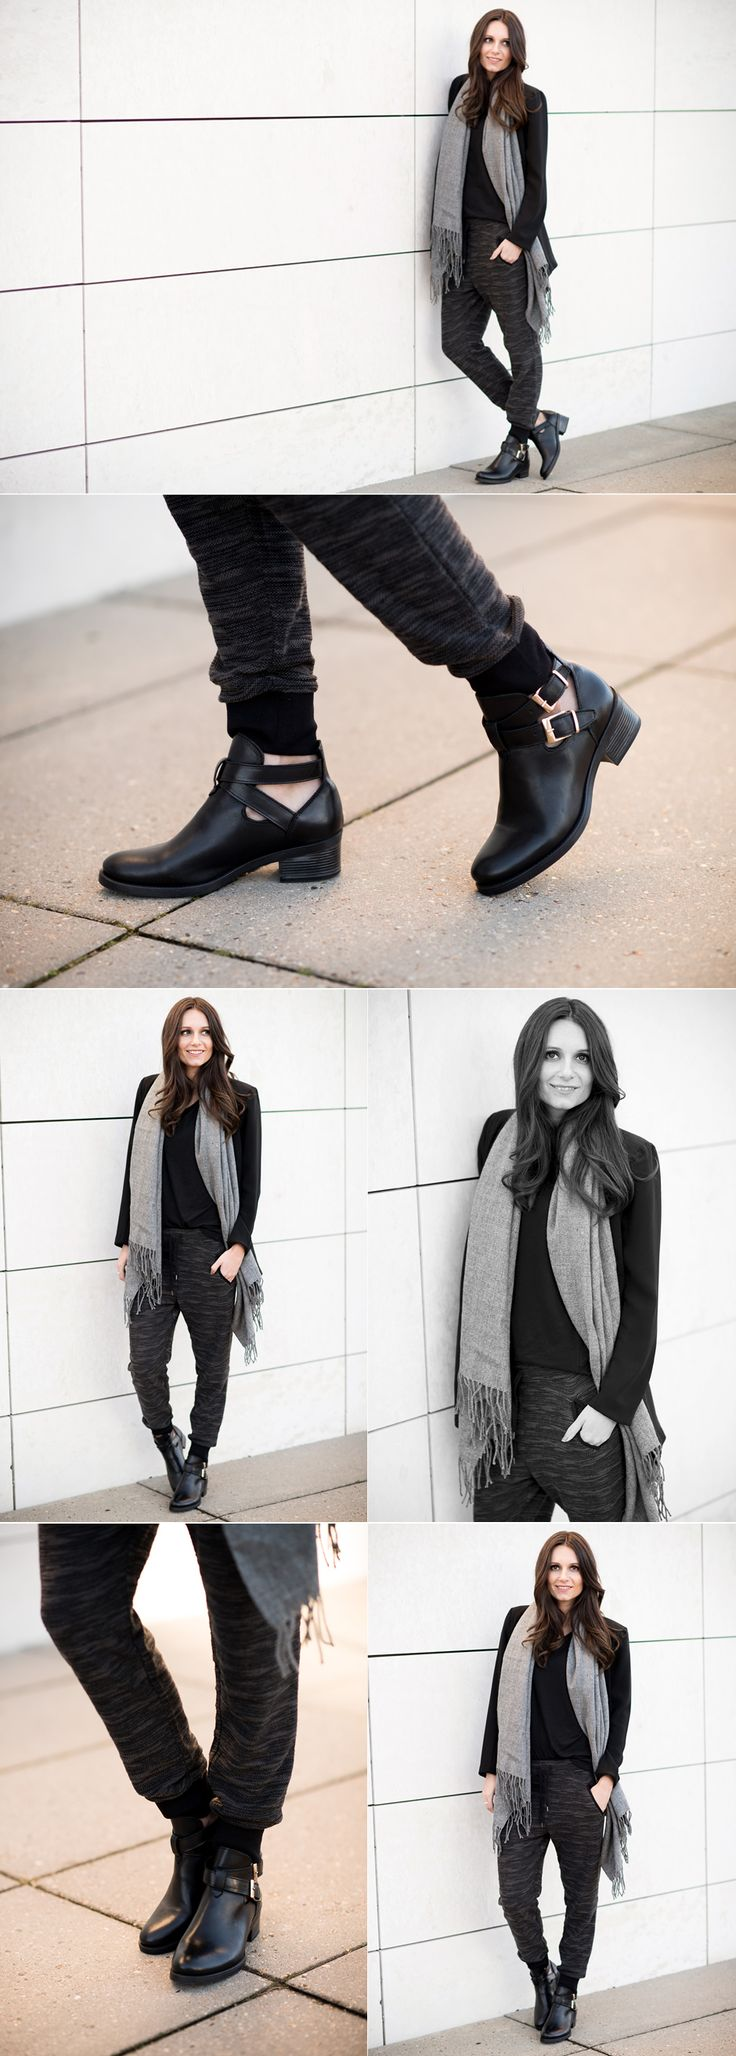 ONLY_FASHION_BLOG_OUTFIT_OF_THE_DAY_SHOES